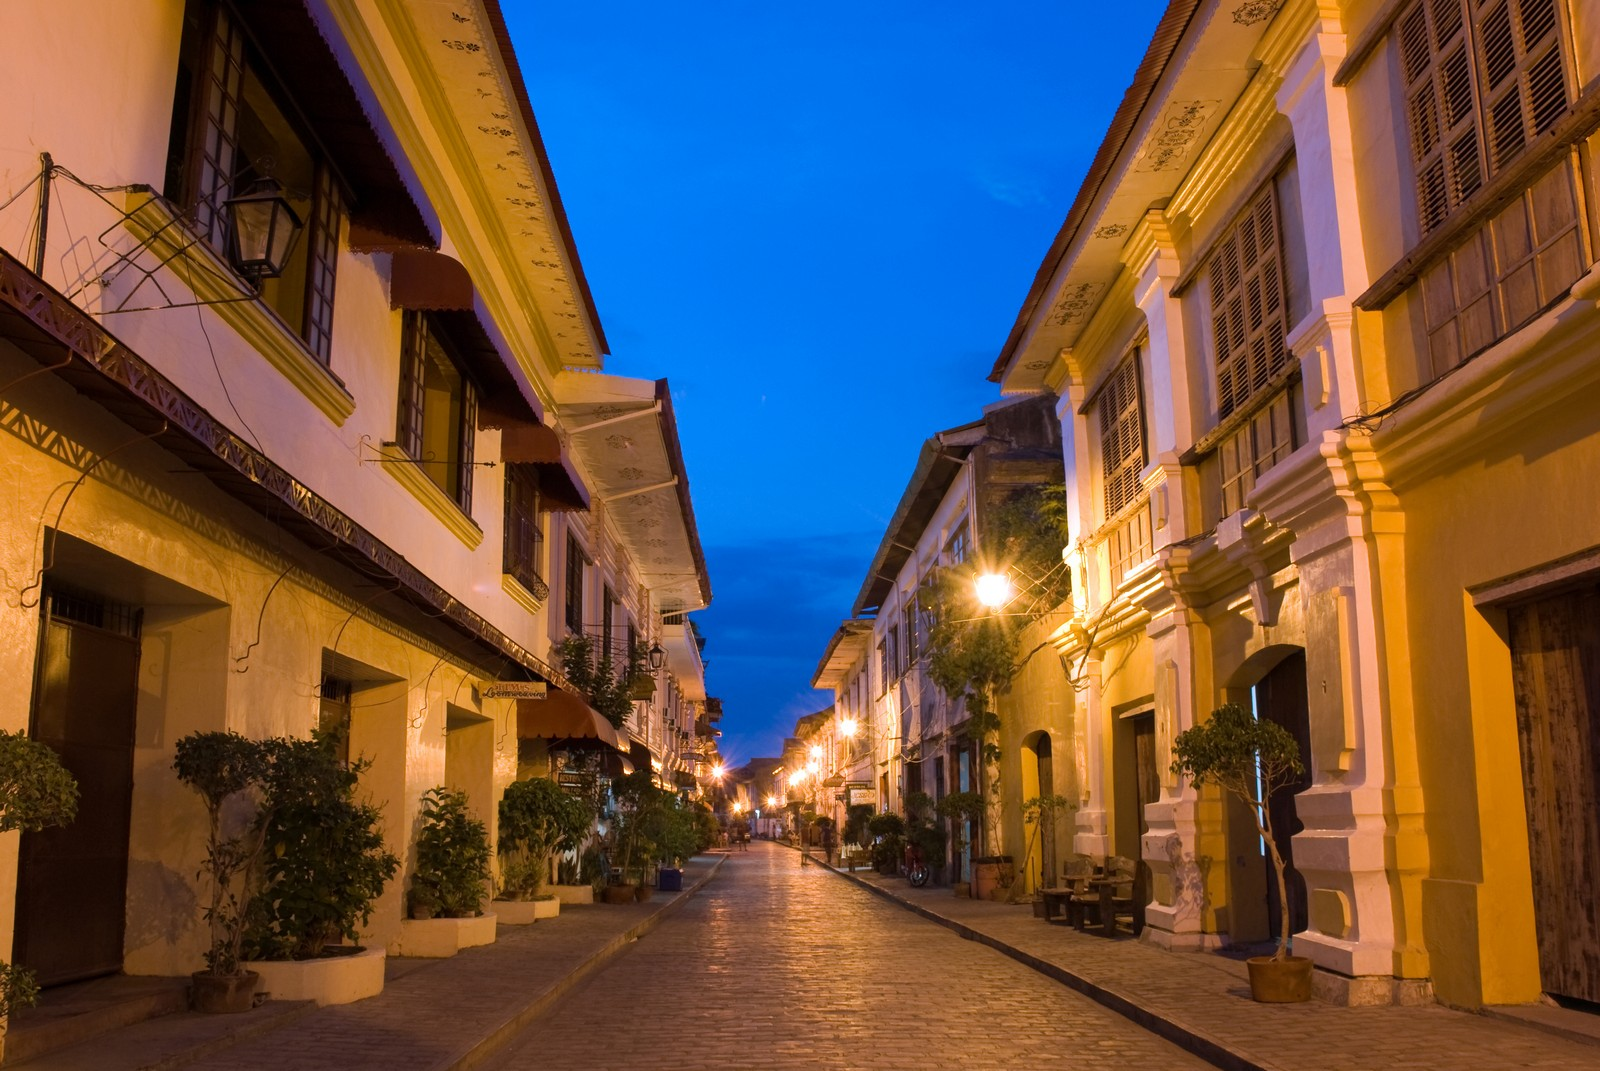 Streets of Calle Crisologo at night